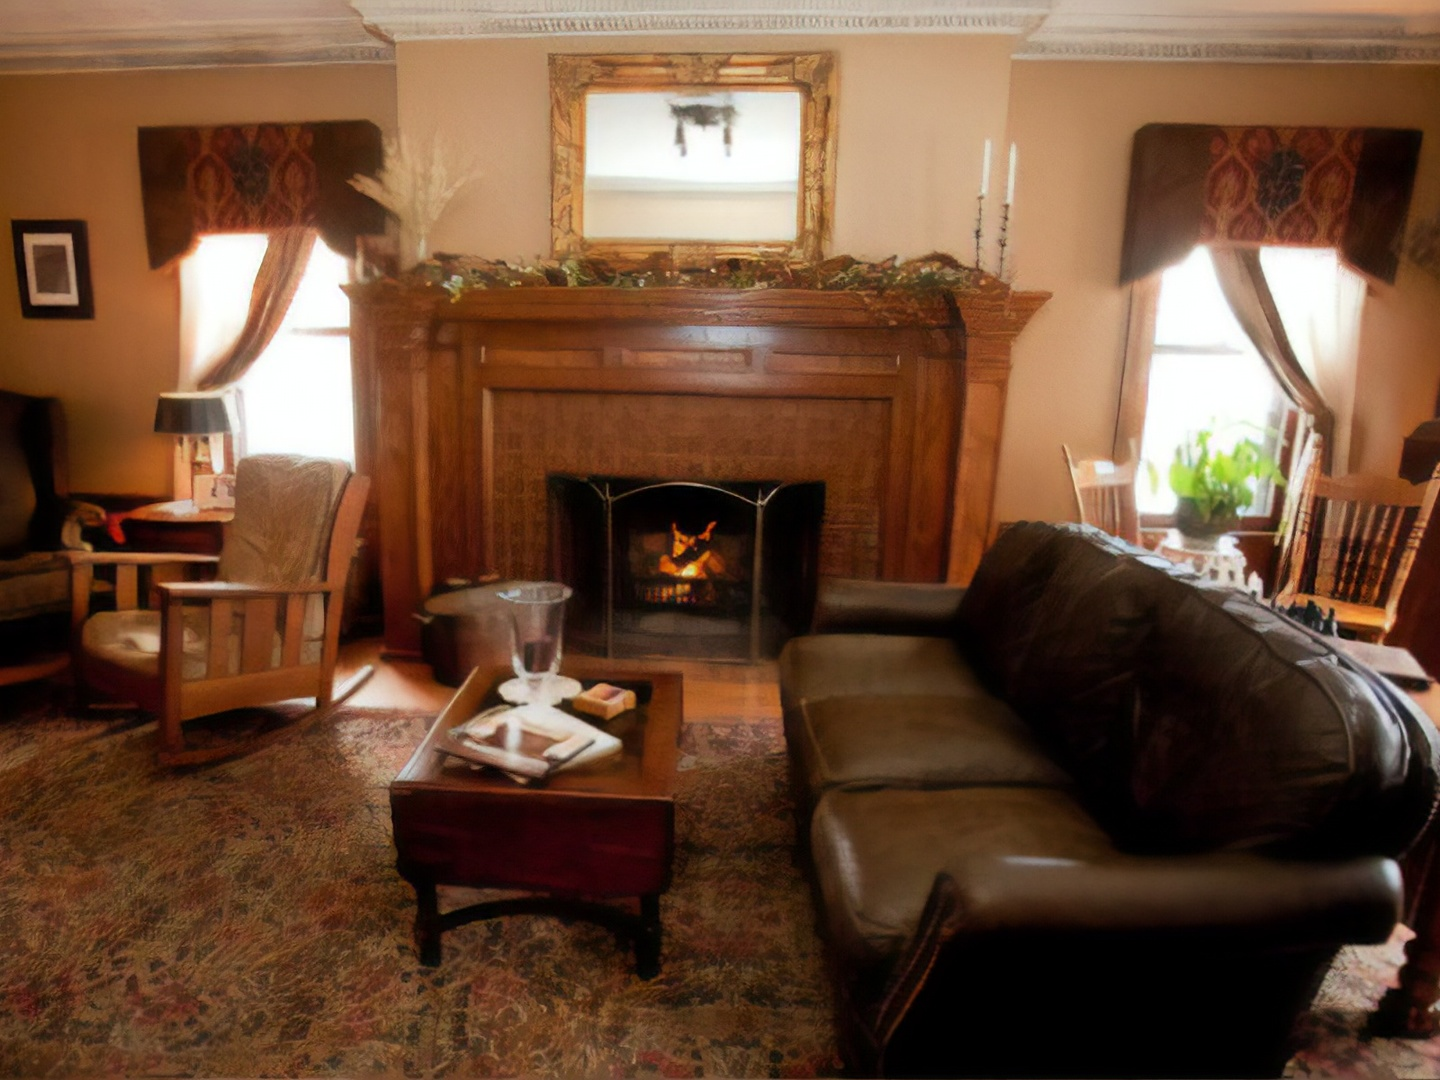 A living room filled with furniture and a fire place at Westphal Mansion Inn Bed and Breakfast.